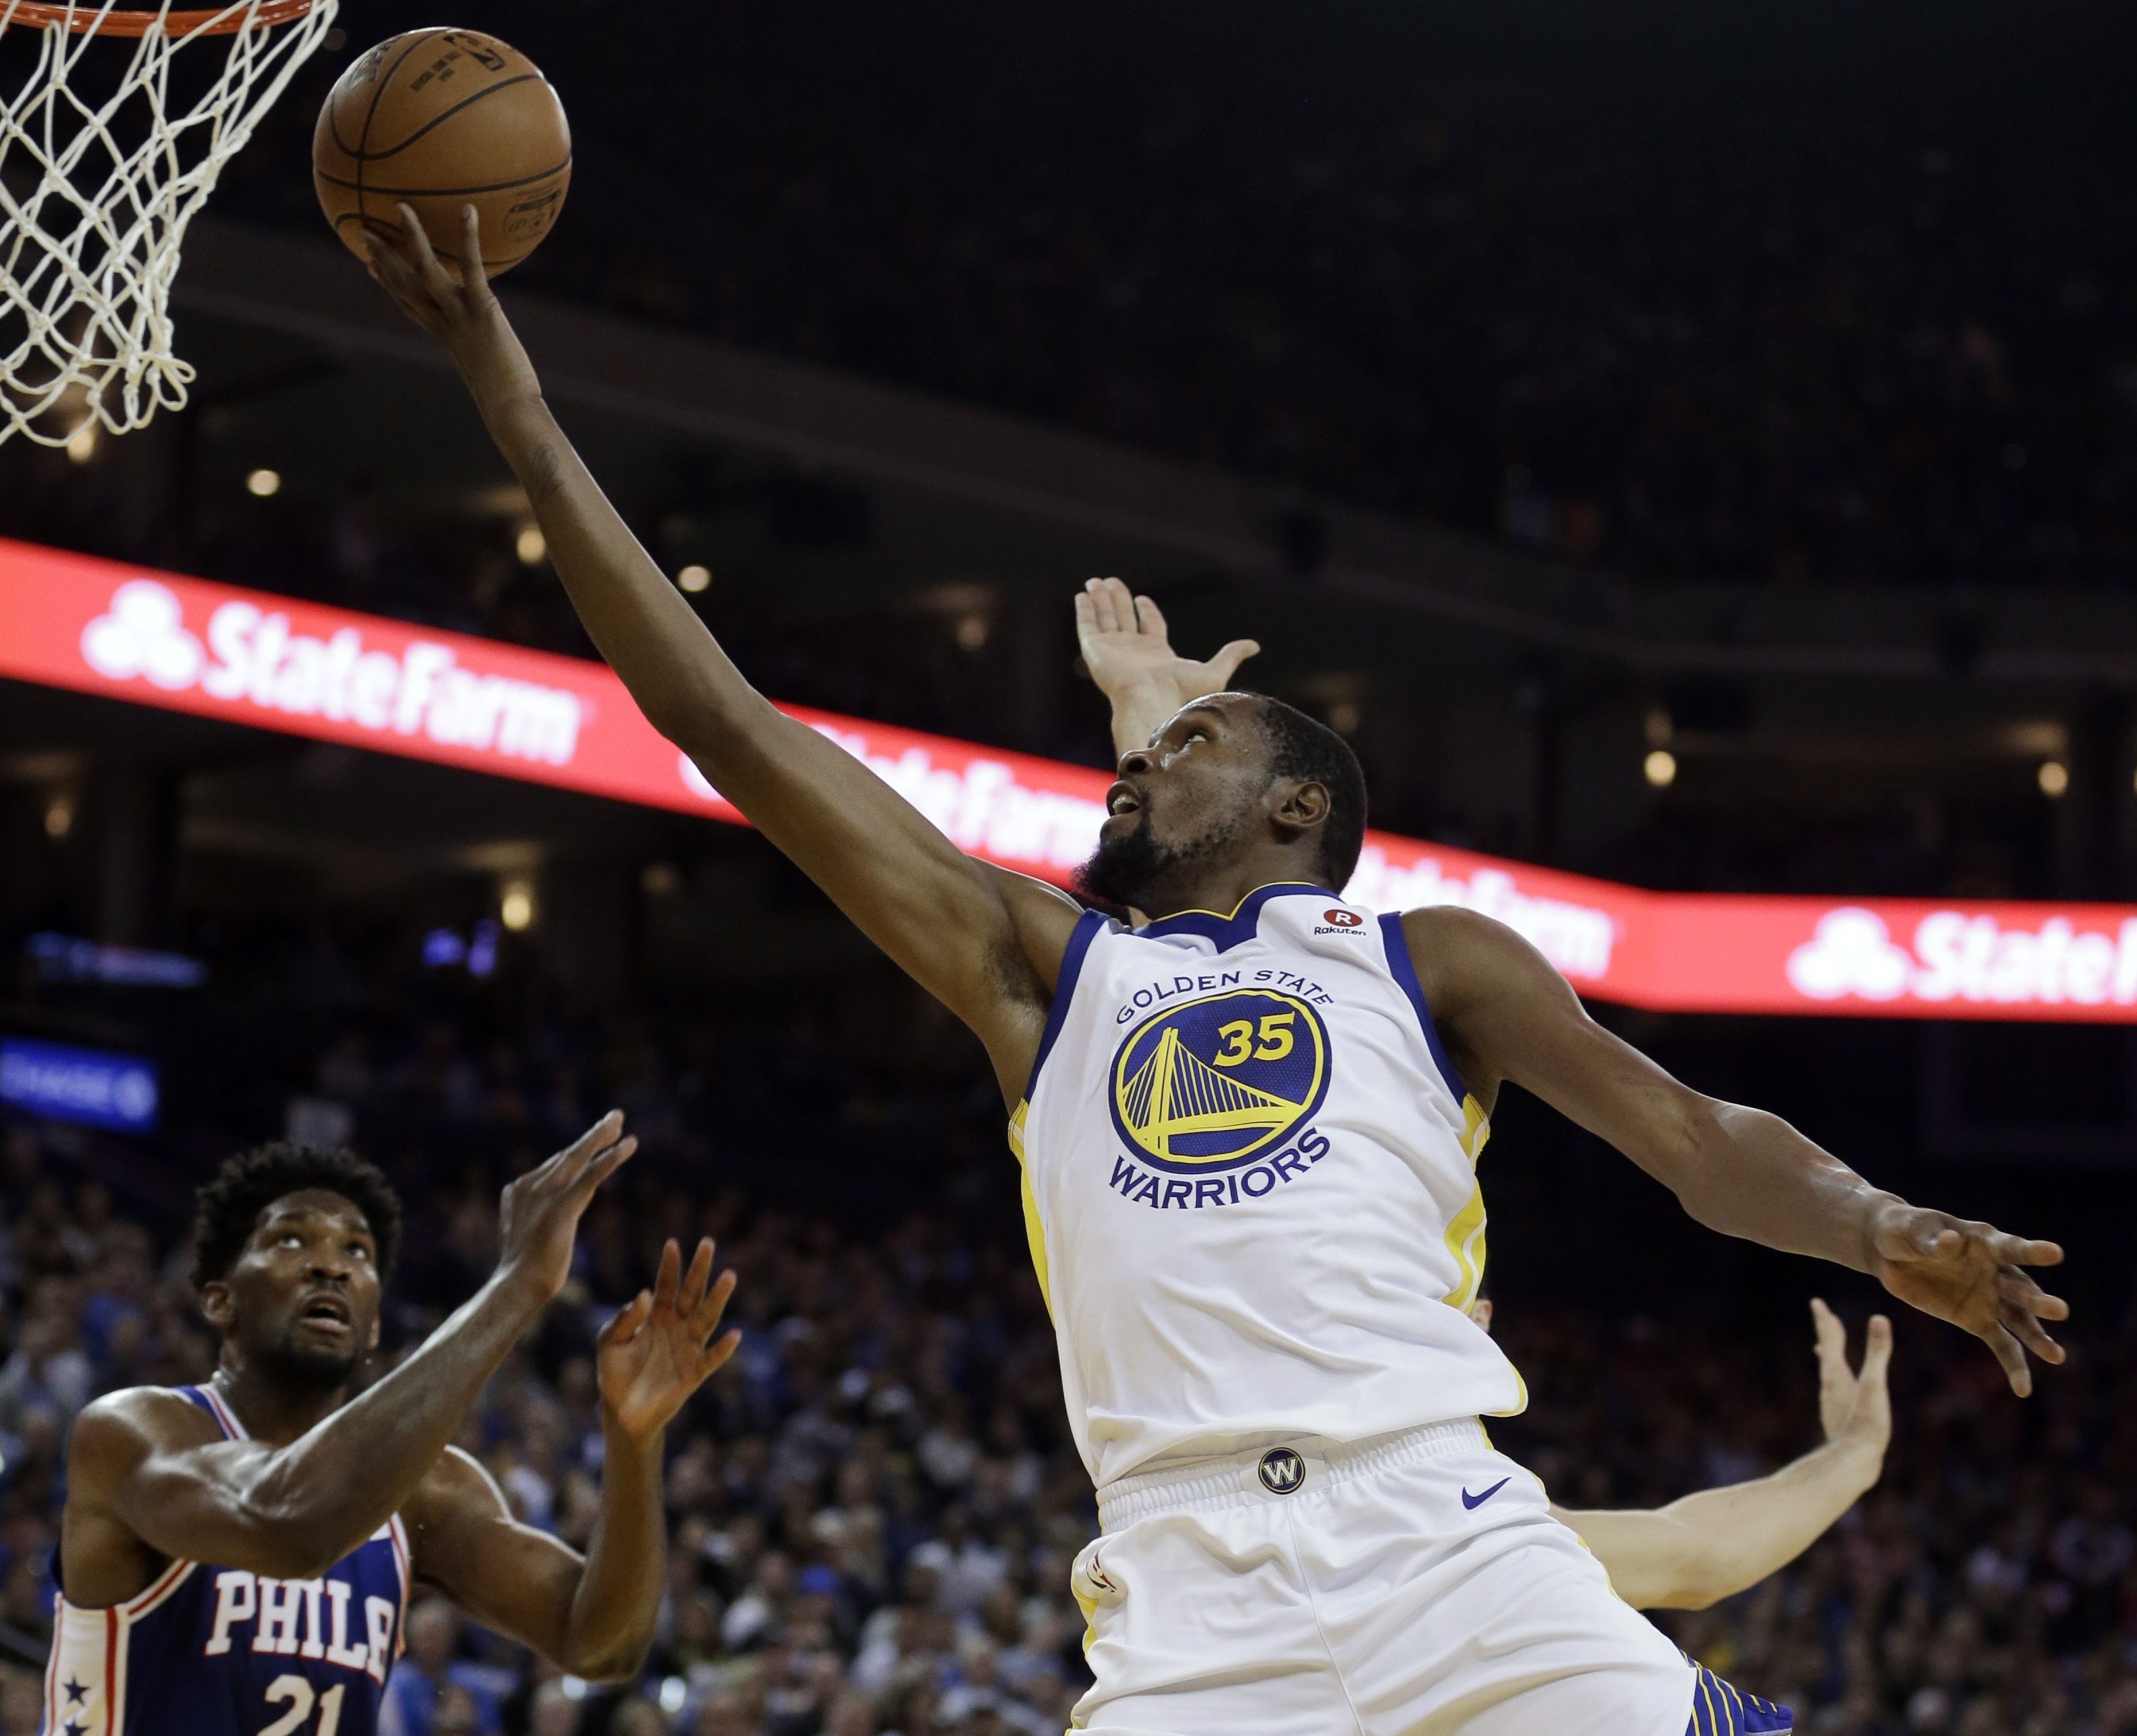 Golden State Warriors´ Kevin Durant (35) lays up a shot over Philadelphia 76ers´ Joel Embiid (21) during the first half of an NBA basketball game Saturday, Nov. 11, 2017, in Oakland, Calif. (AP Photo/Ben Margot)